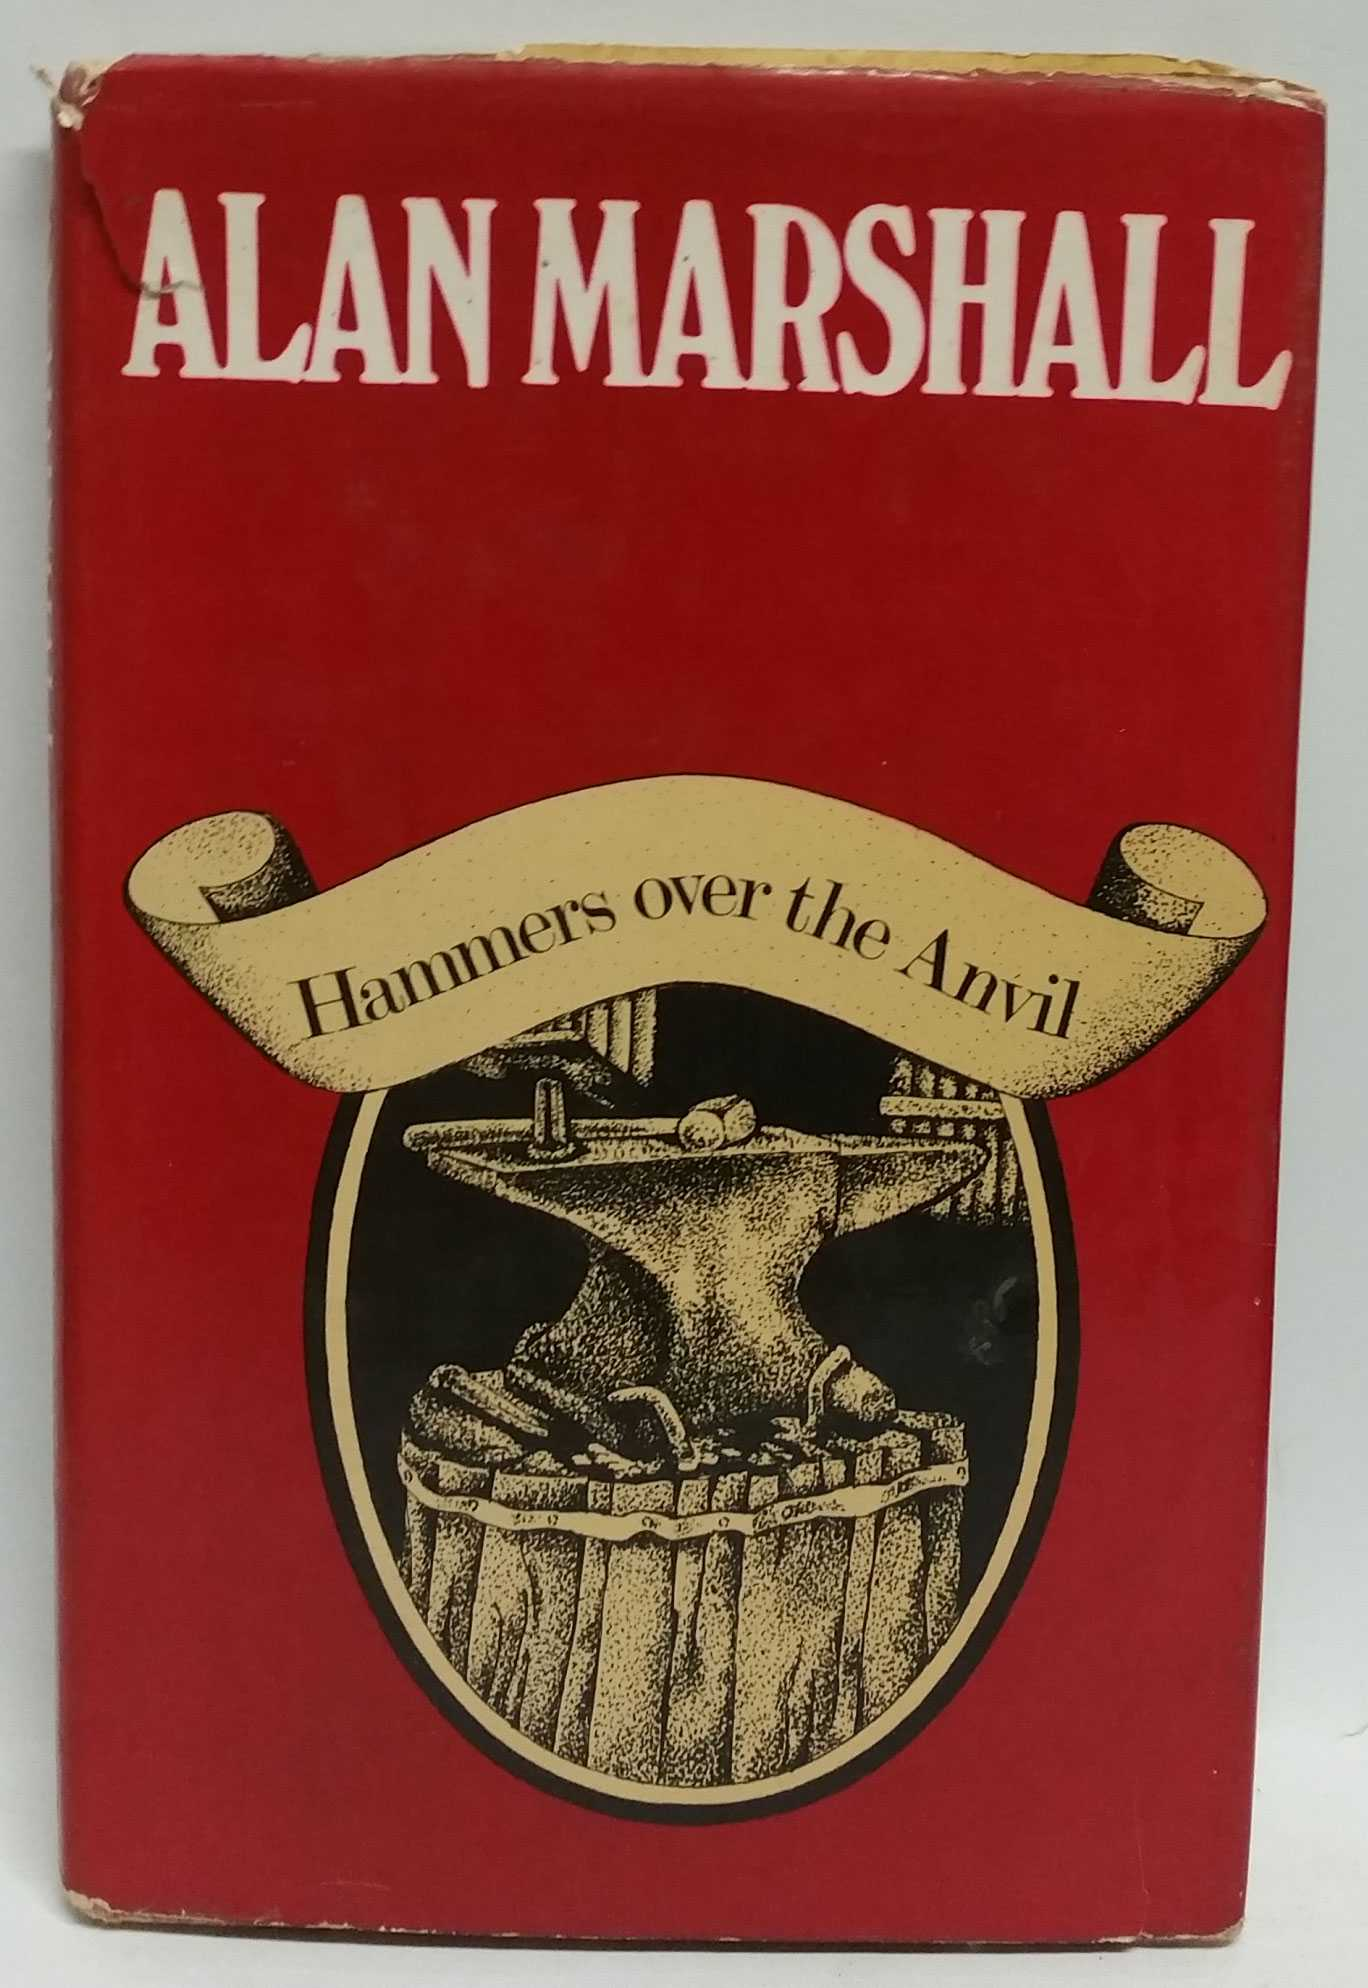 Hammers over the Anvil, Alan Marshall